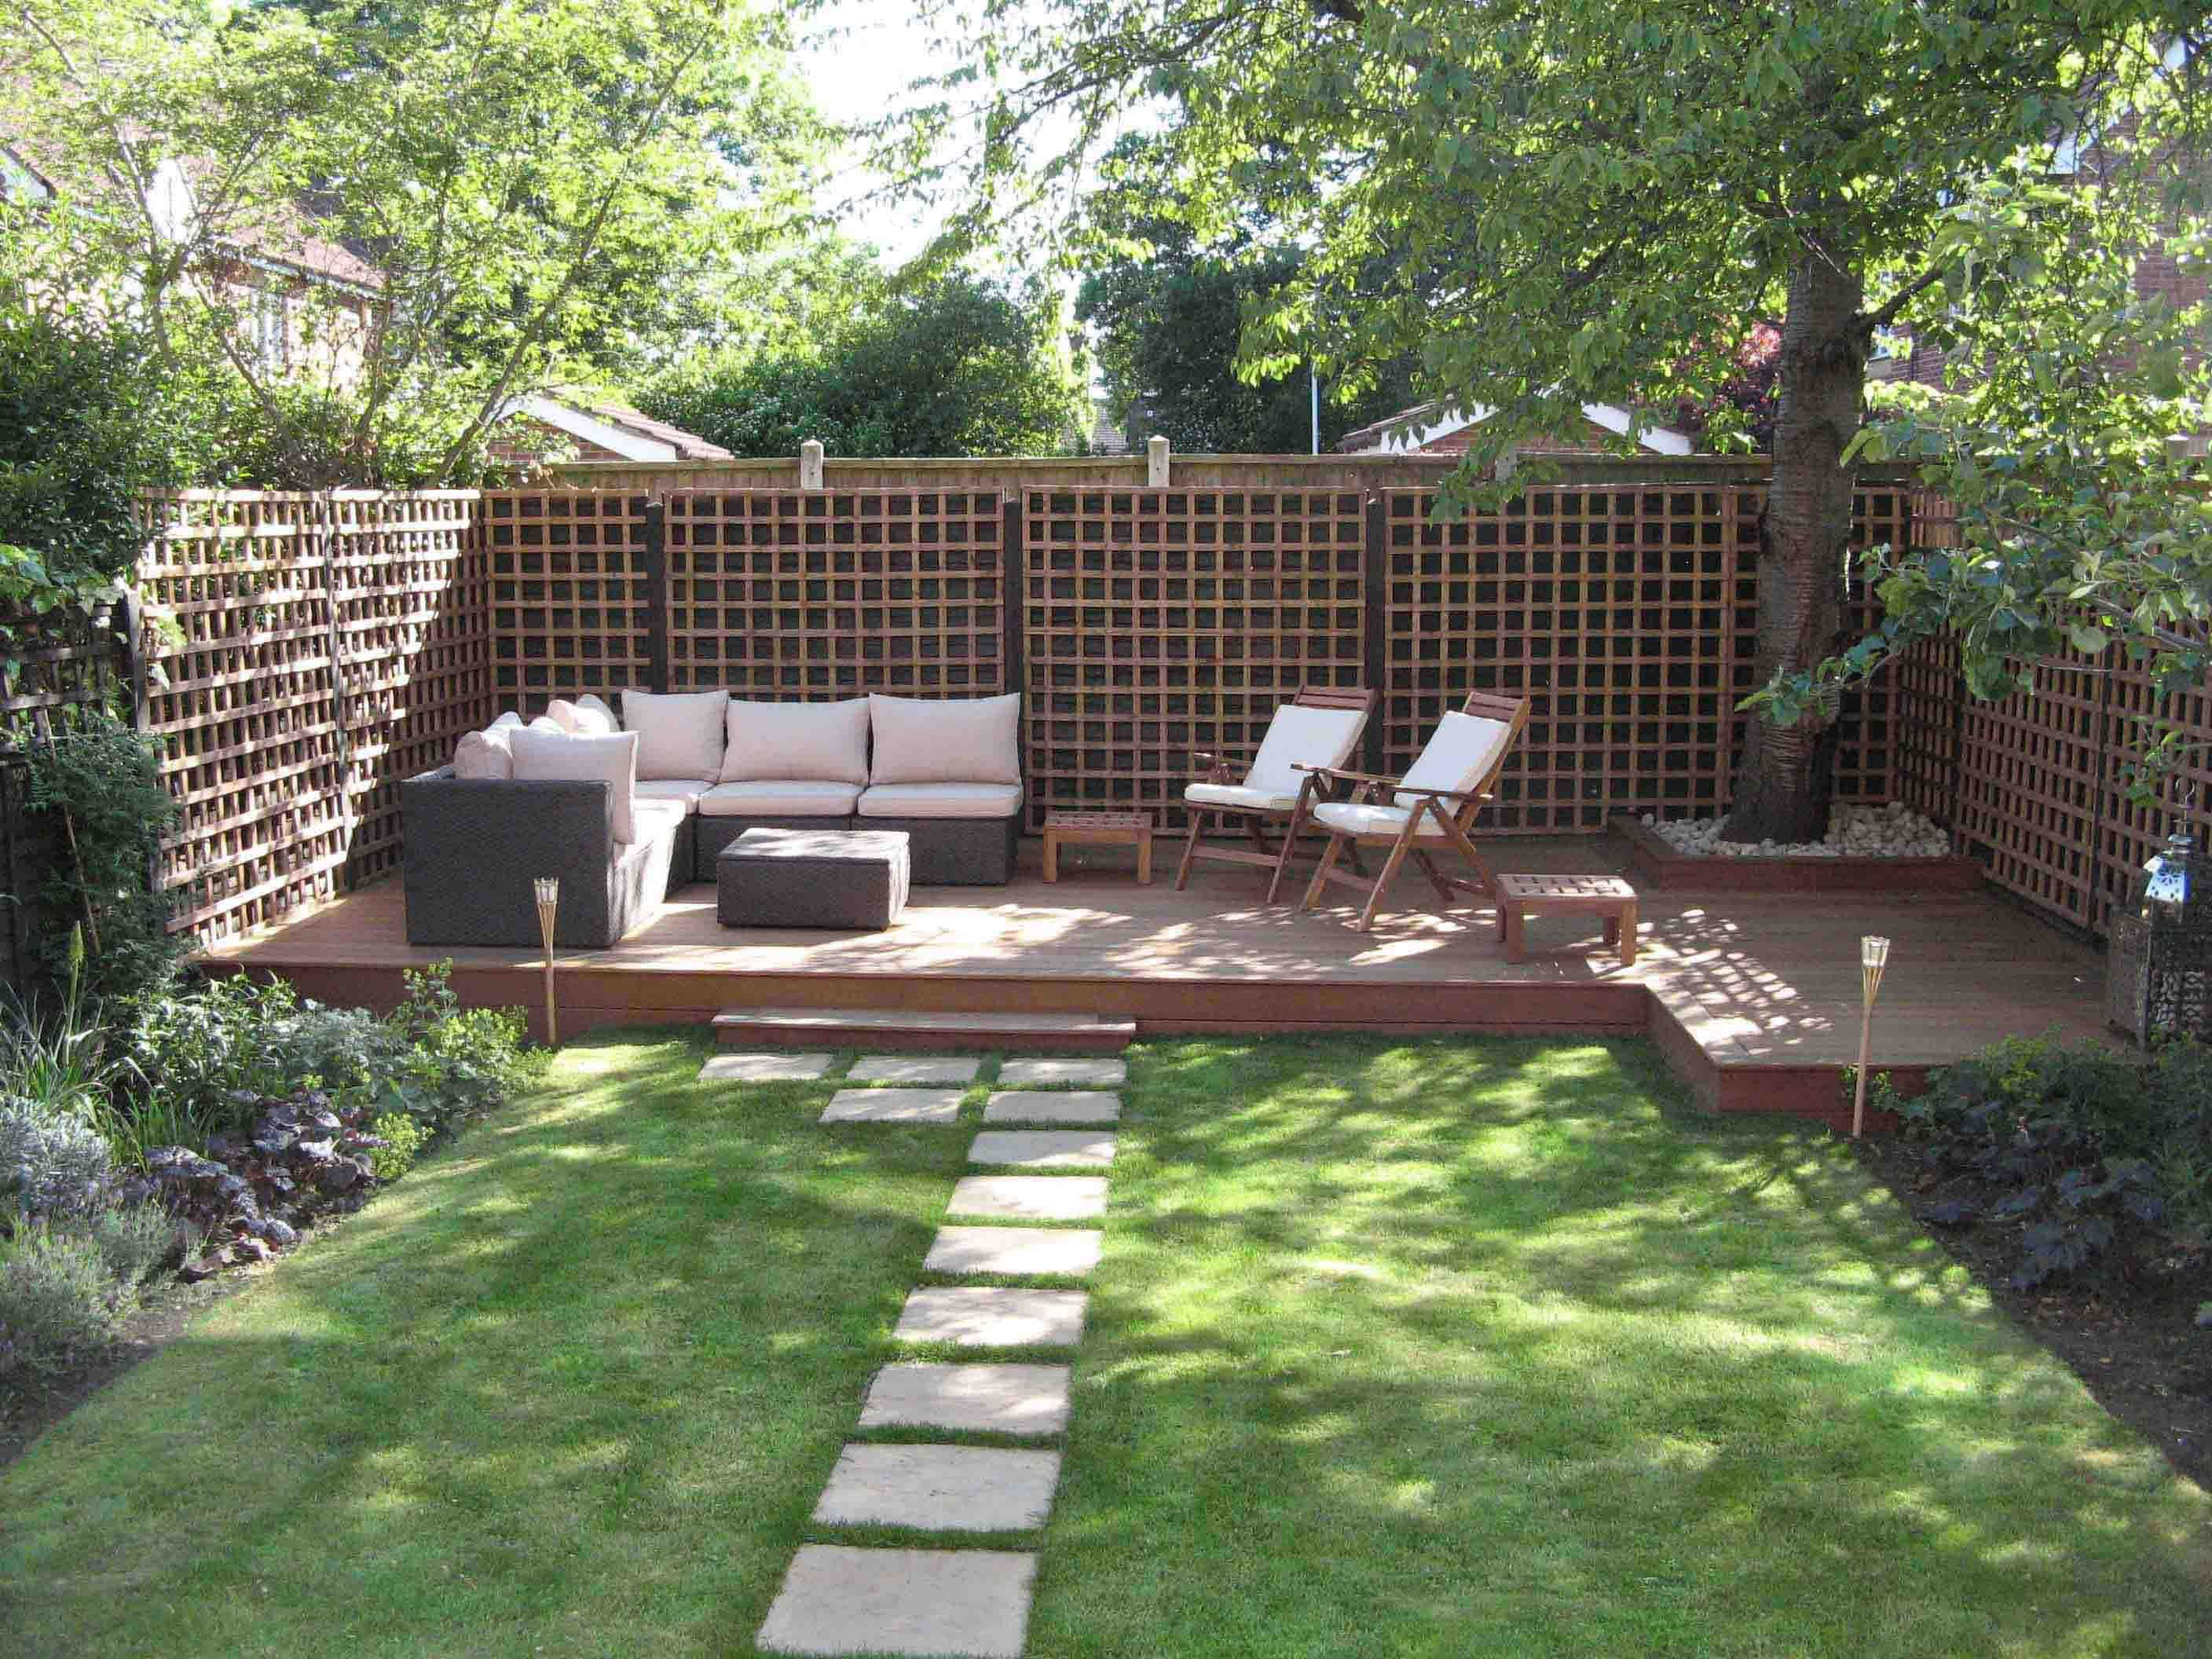 25 Landscape Design For Small Spaces Low Deck Yards And Decking - home garden design ideas